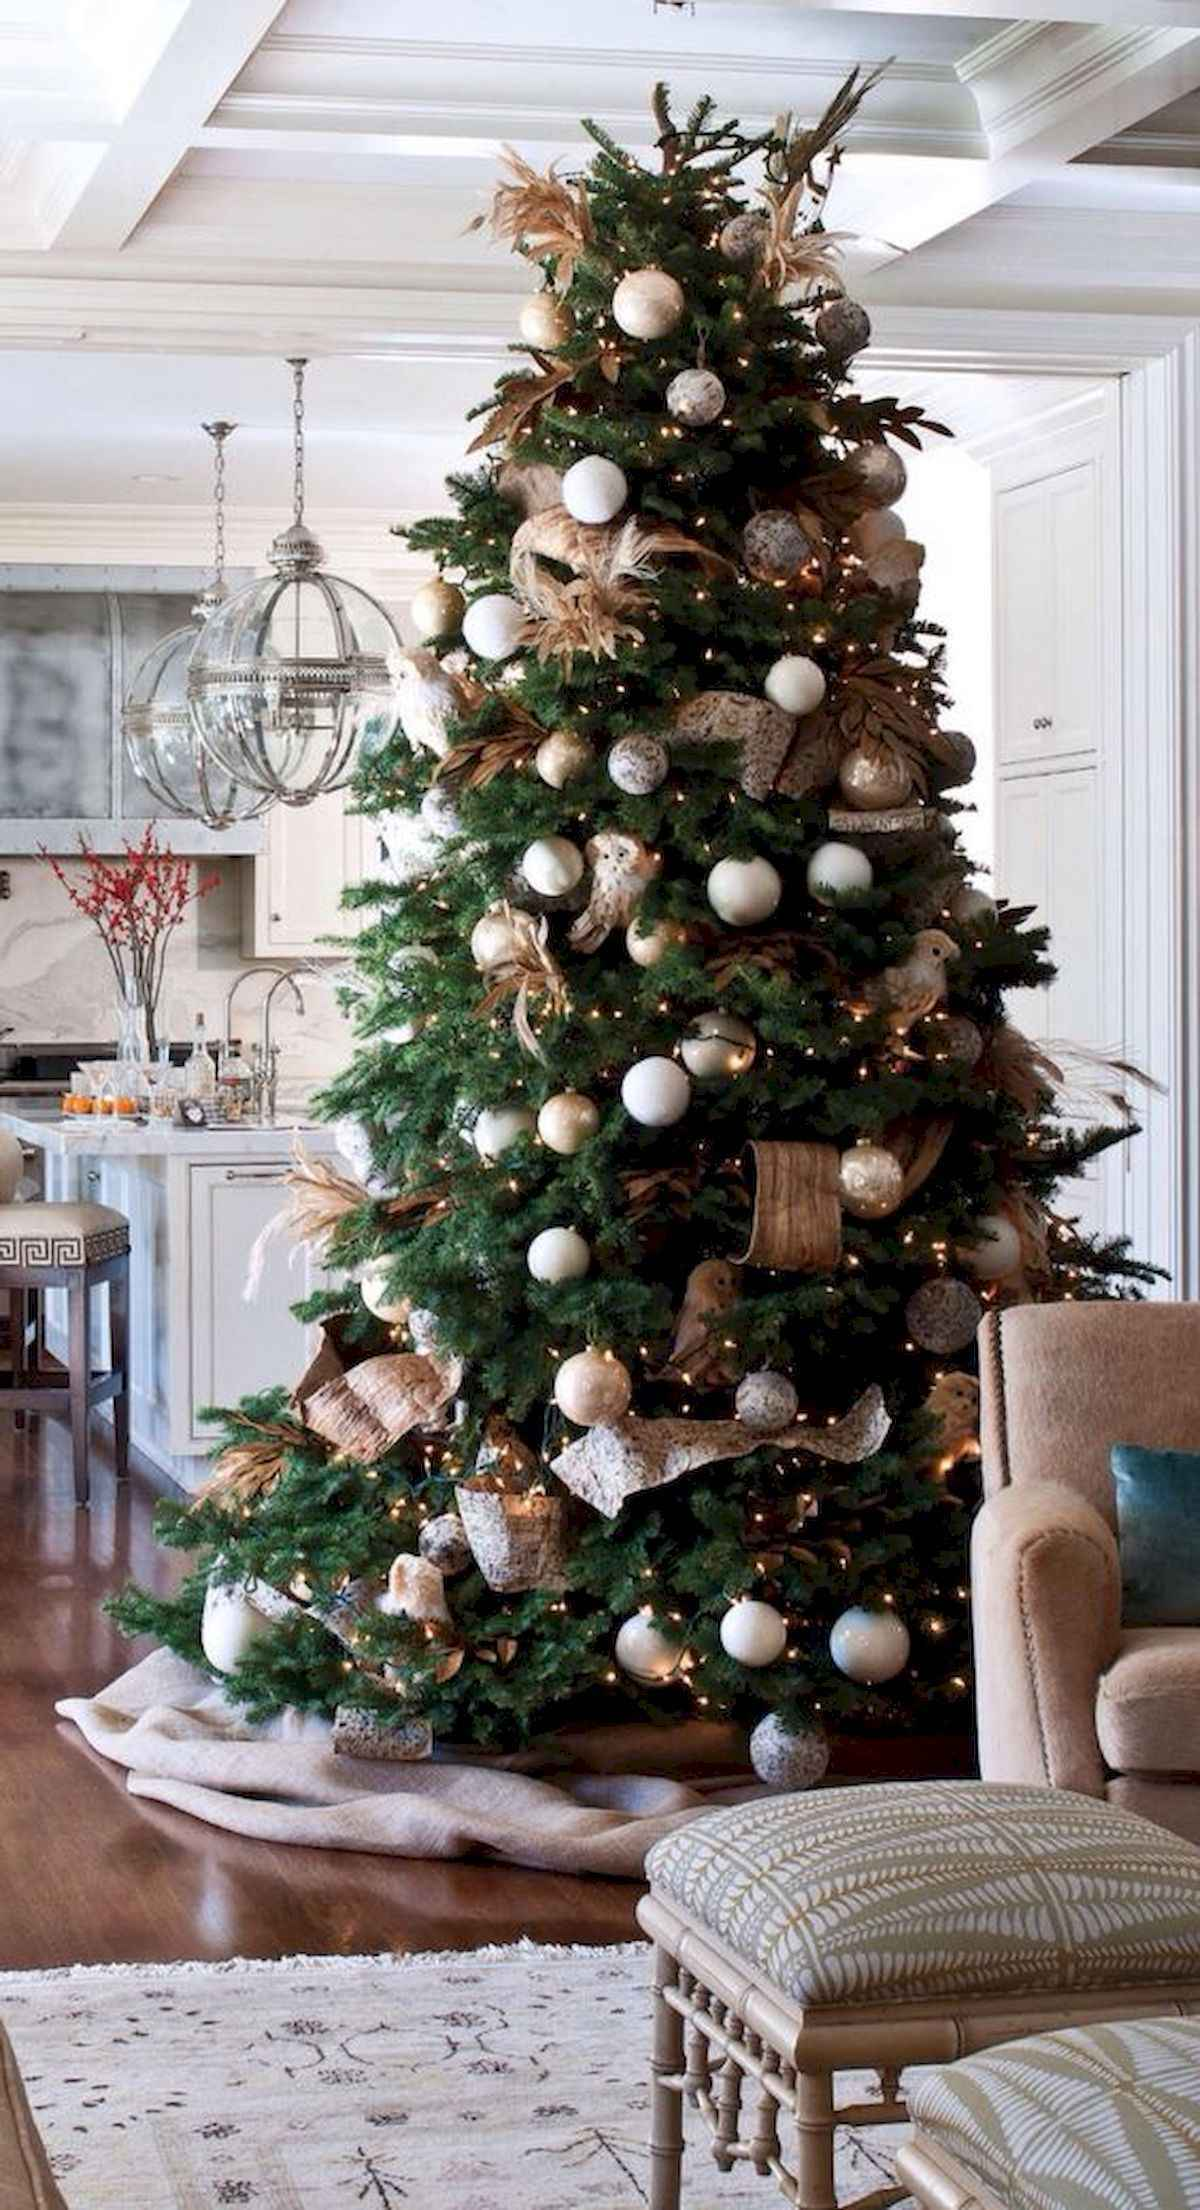 60 awesome christmas tree decorations ideas (29)